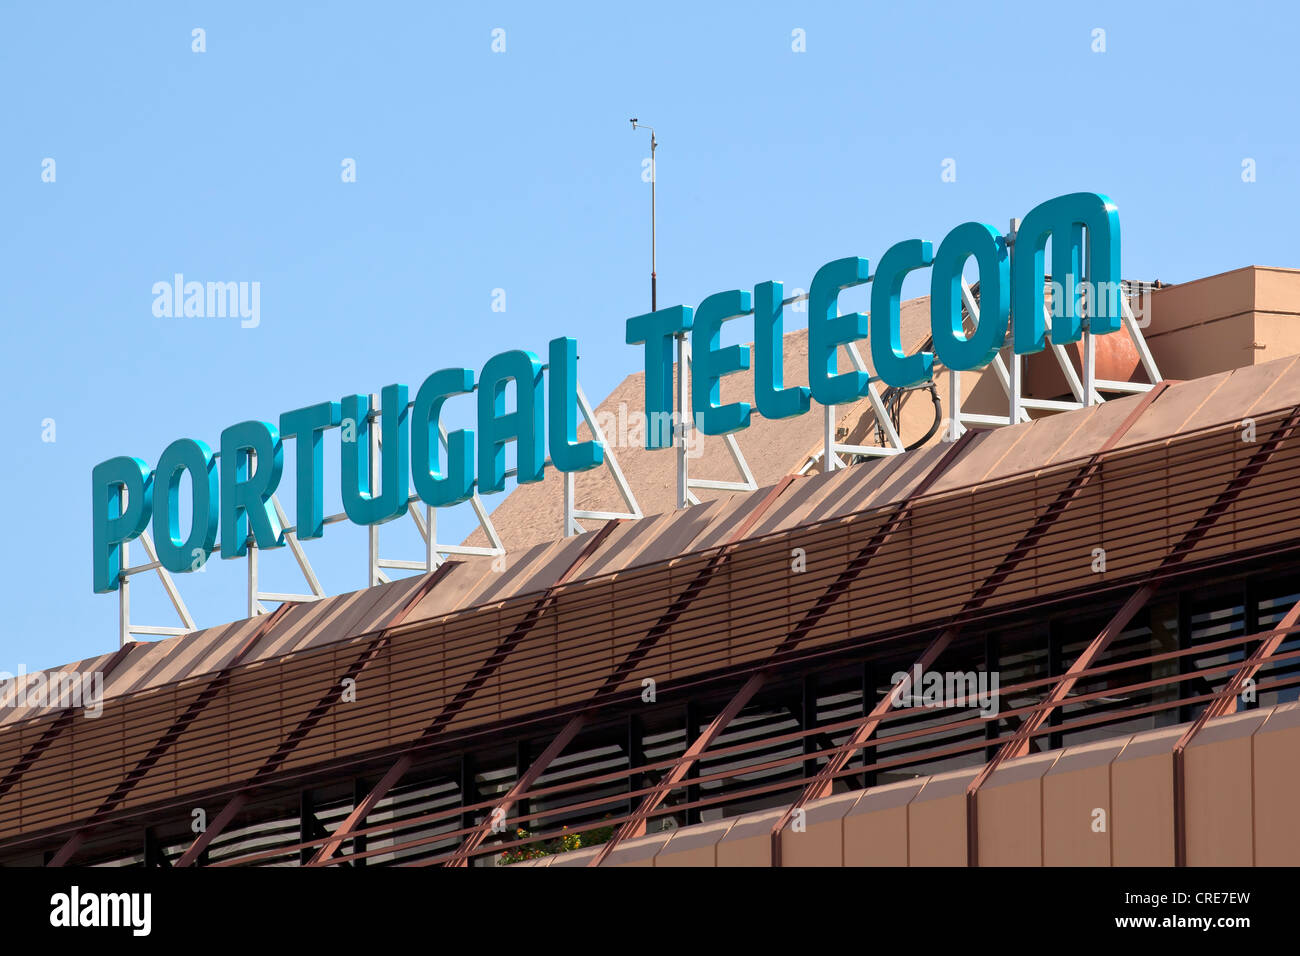 Signage on the headquarters of the Portuguese telecommunications company, Portugal Telecom, PT, in Lisbon, Portugal, - Stock Image